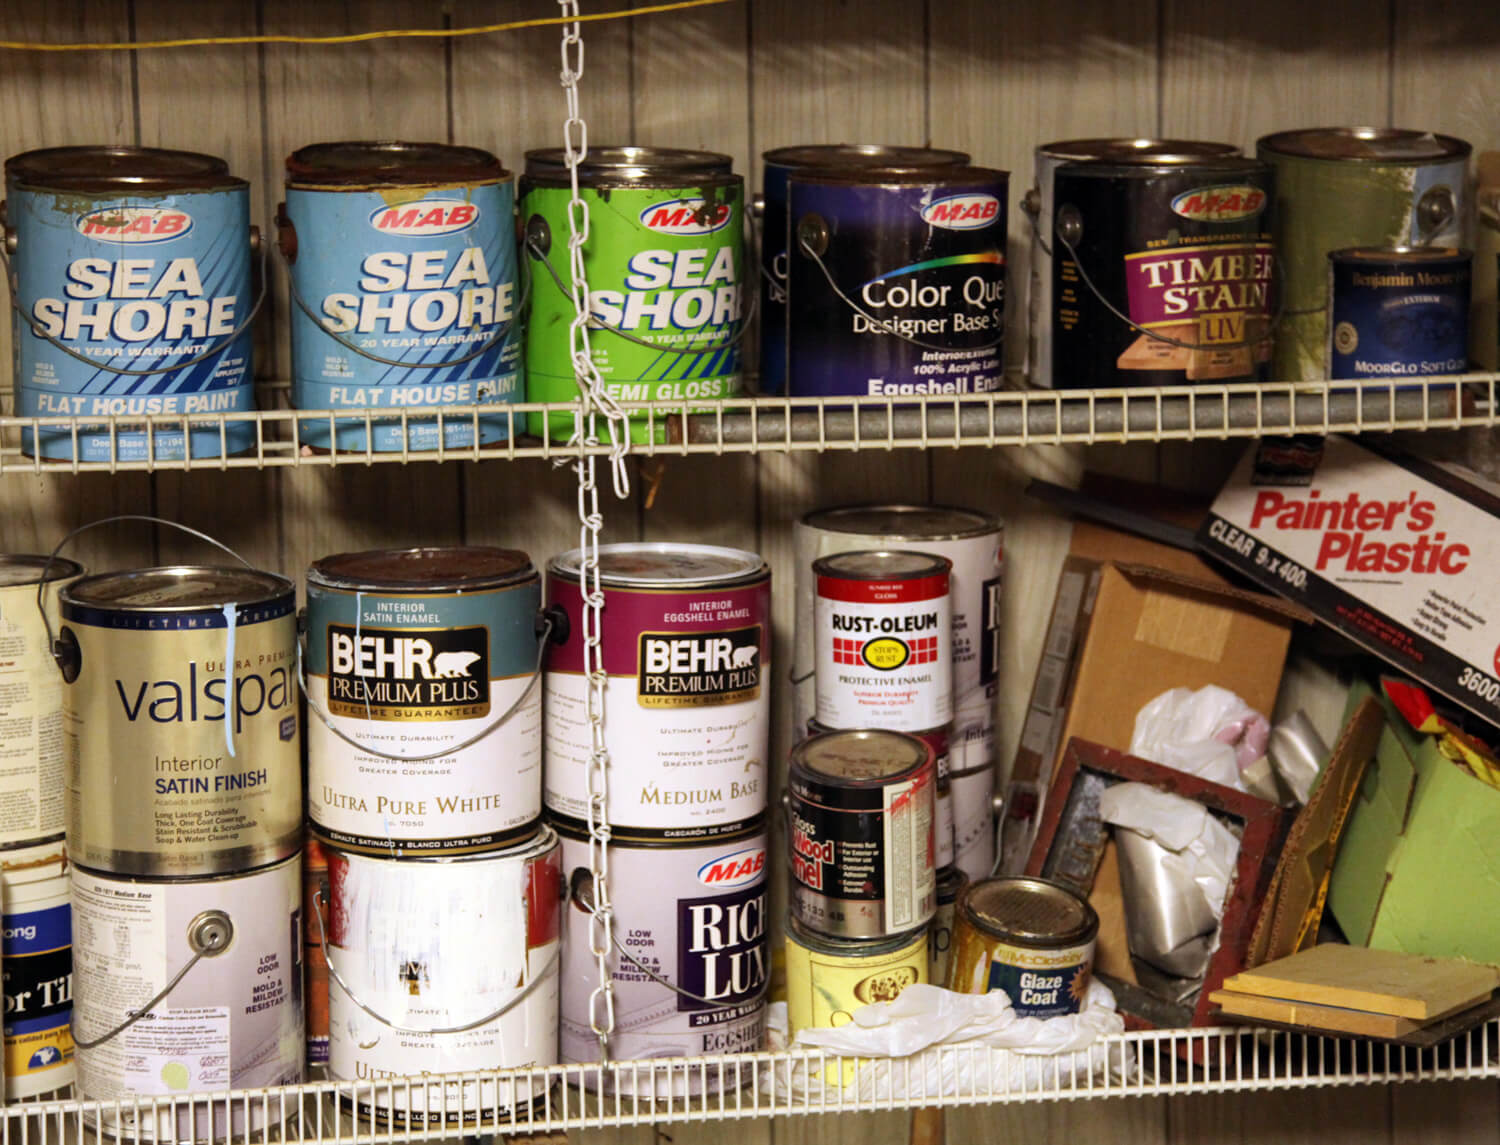 Old paint can also be sent away